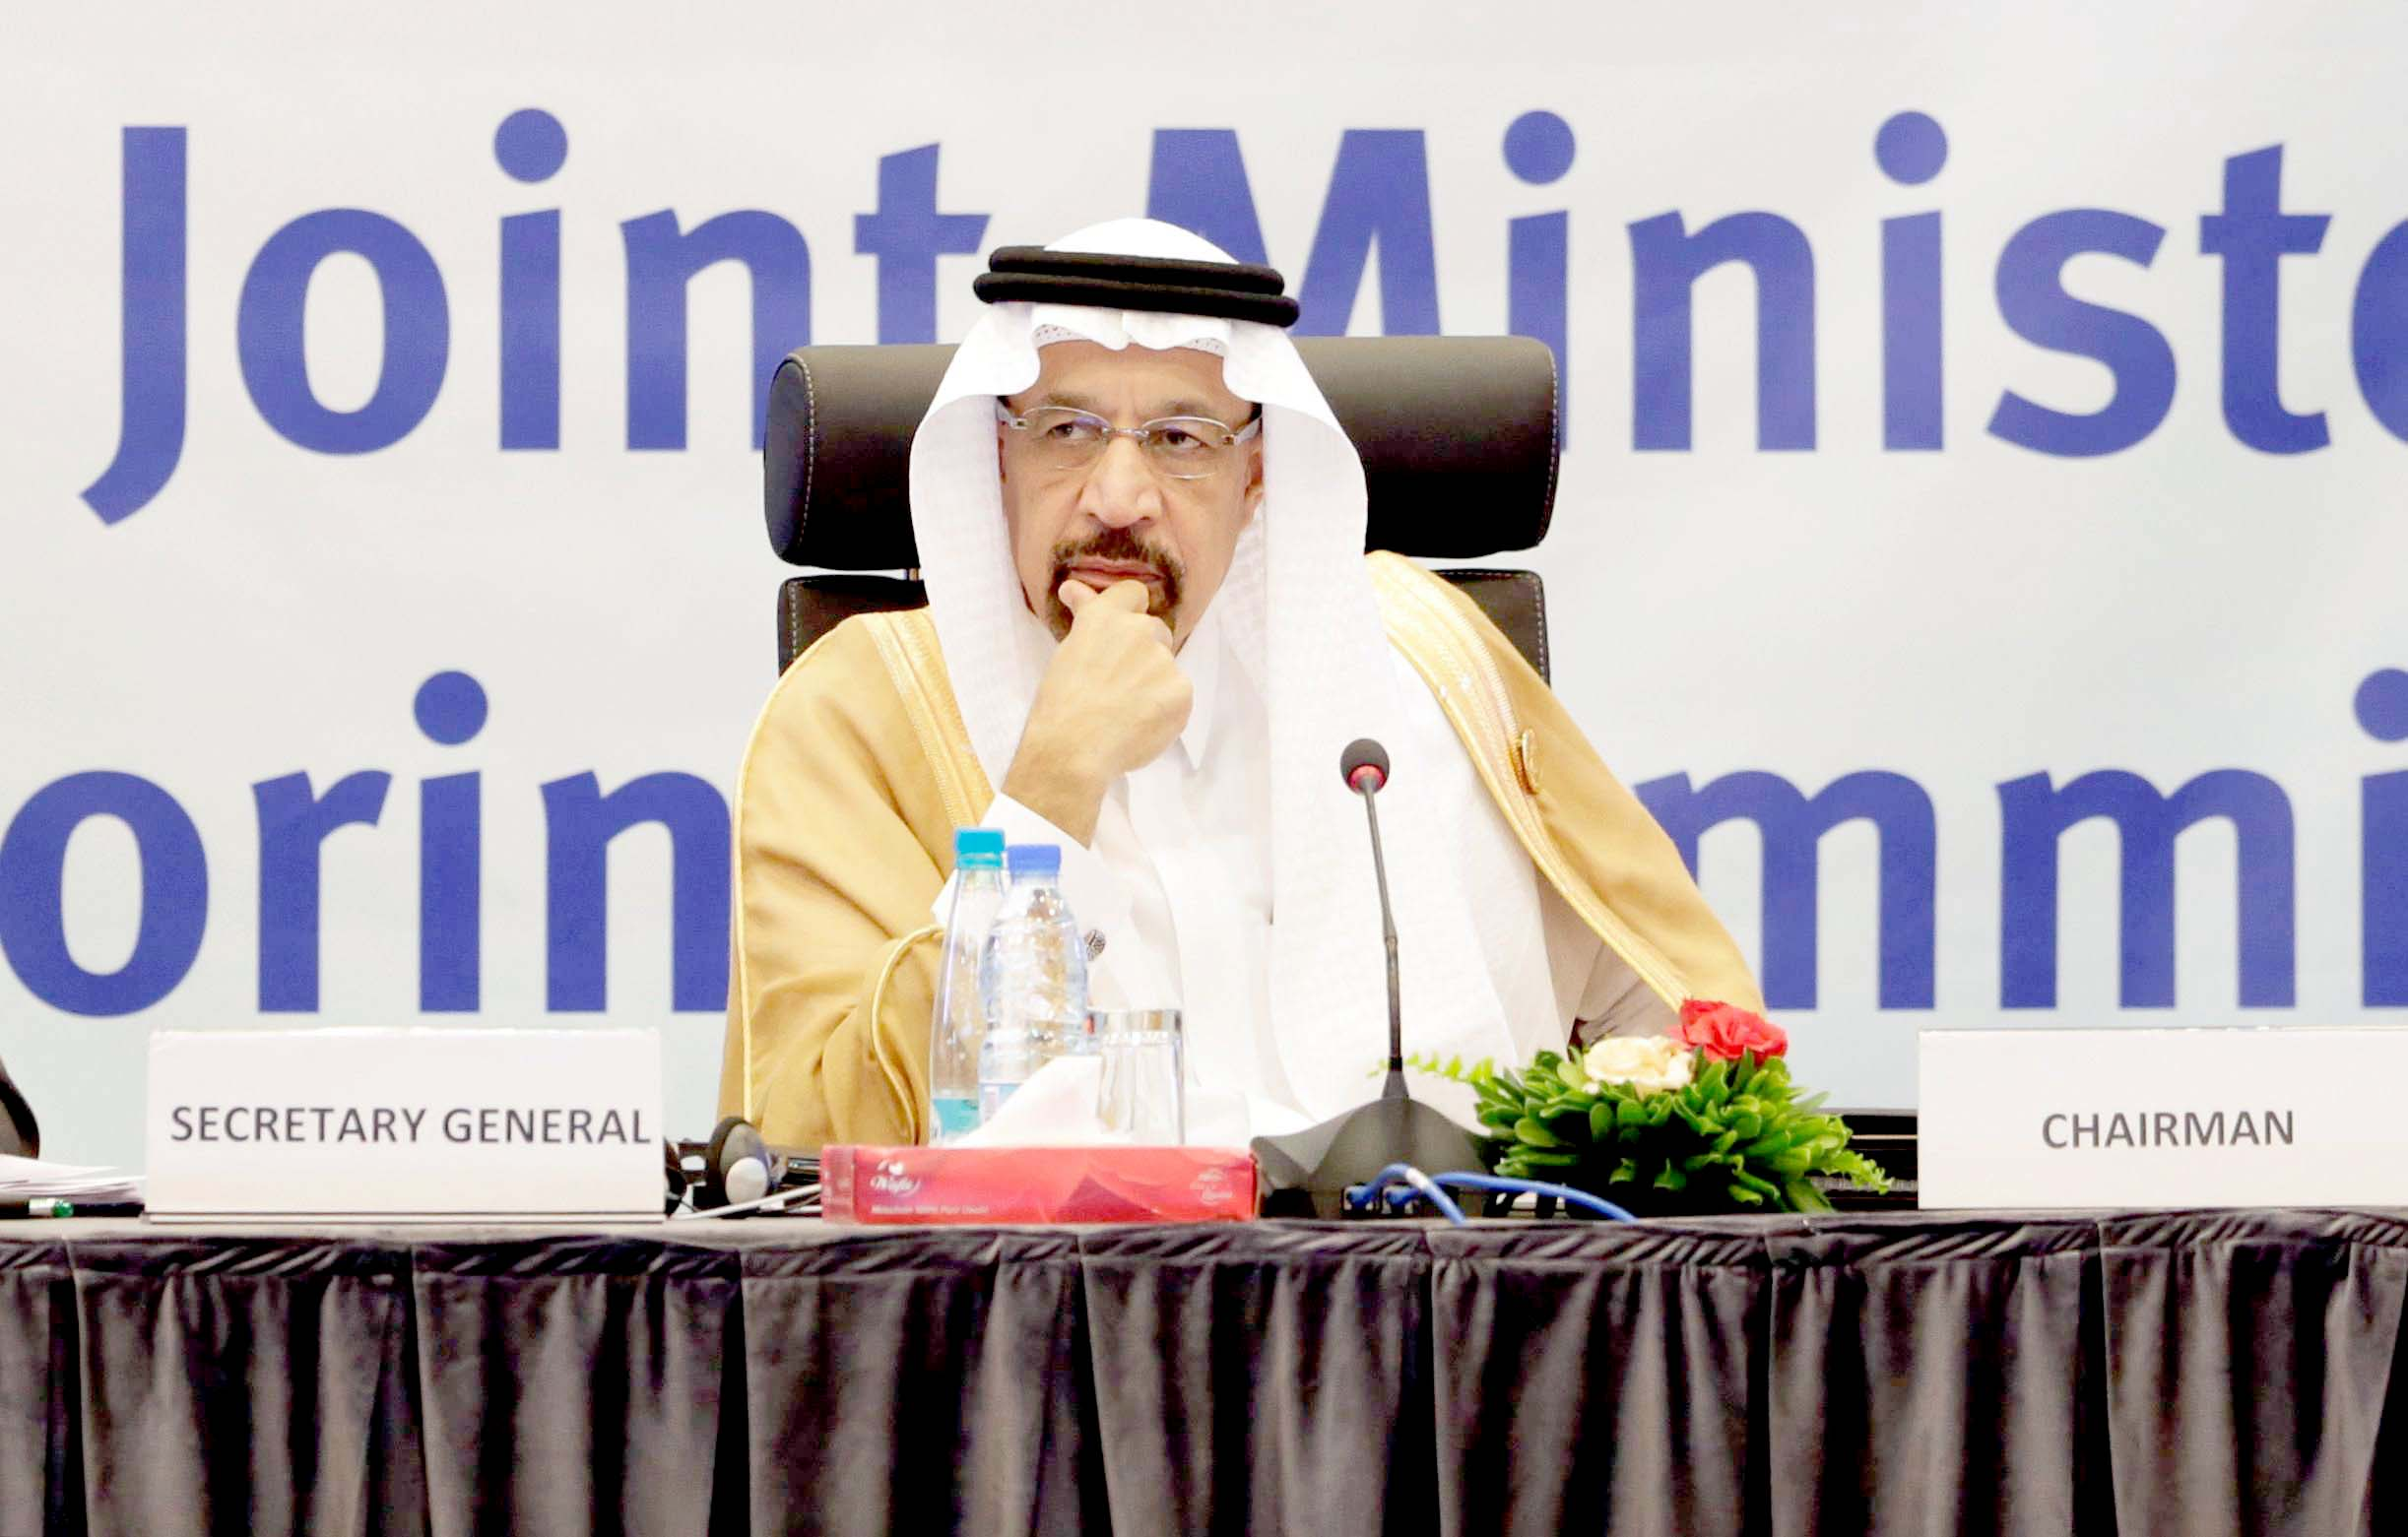 Saudi Energy Minister Khalid al-Falih at the inaugural session ceremony of the OPEC Ministerial Monitoring Committee in Algiers, on September 23. (Reuters)